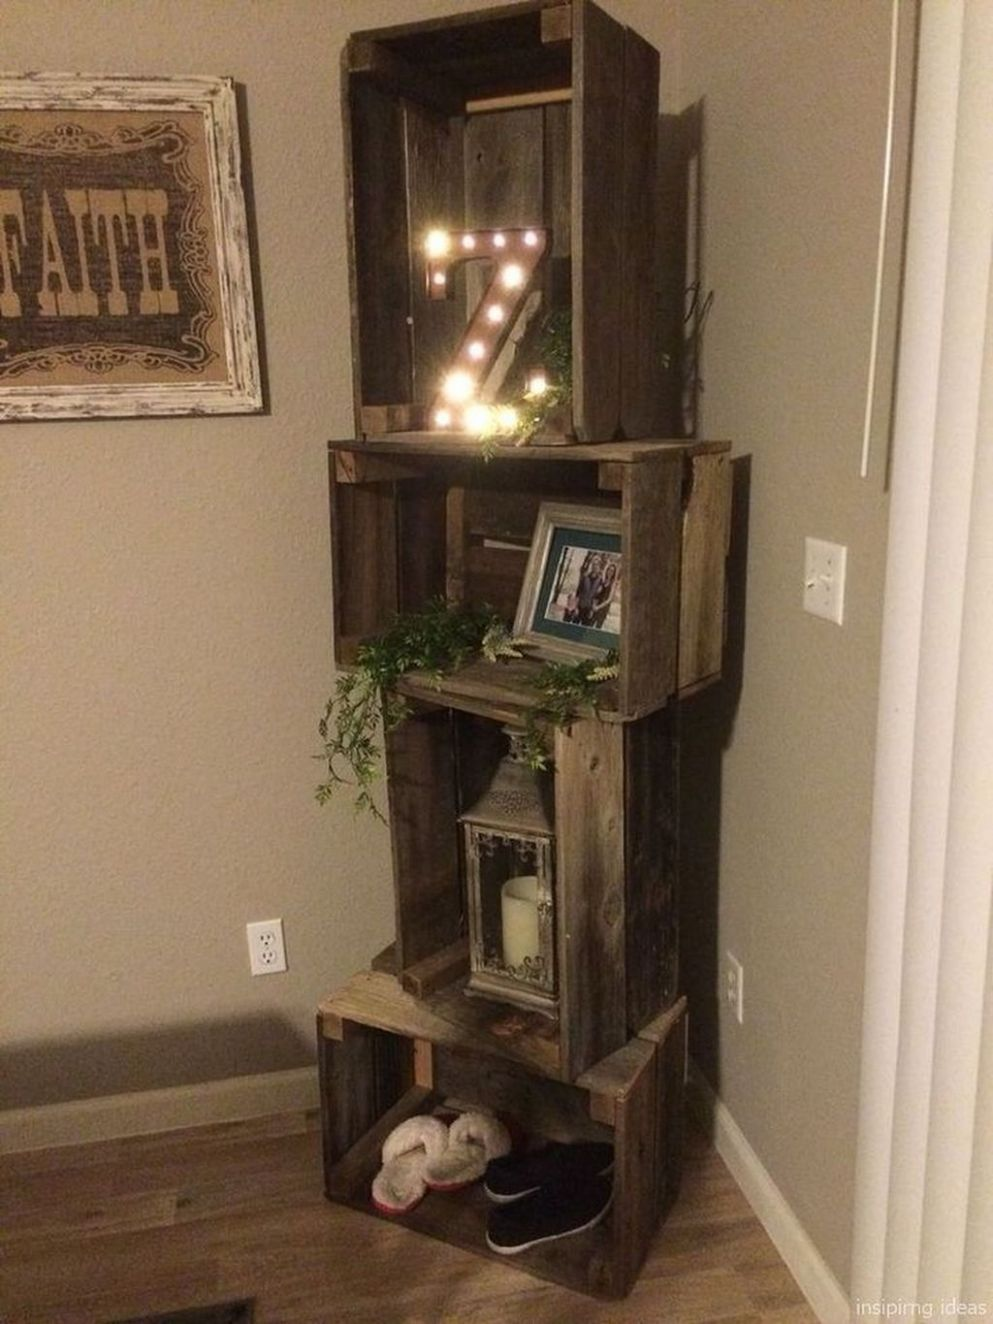 11 Perfect Diy Home Decor Ideas On A Budget You Must Try (With ...